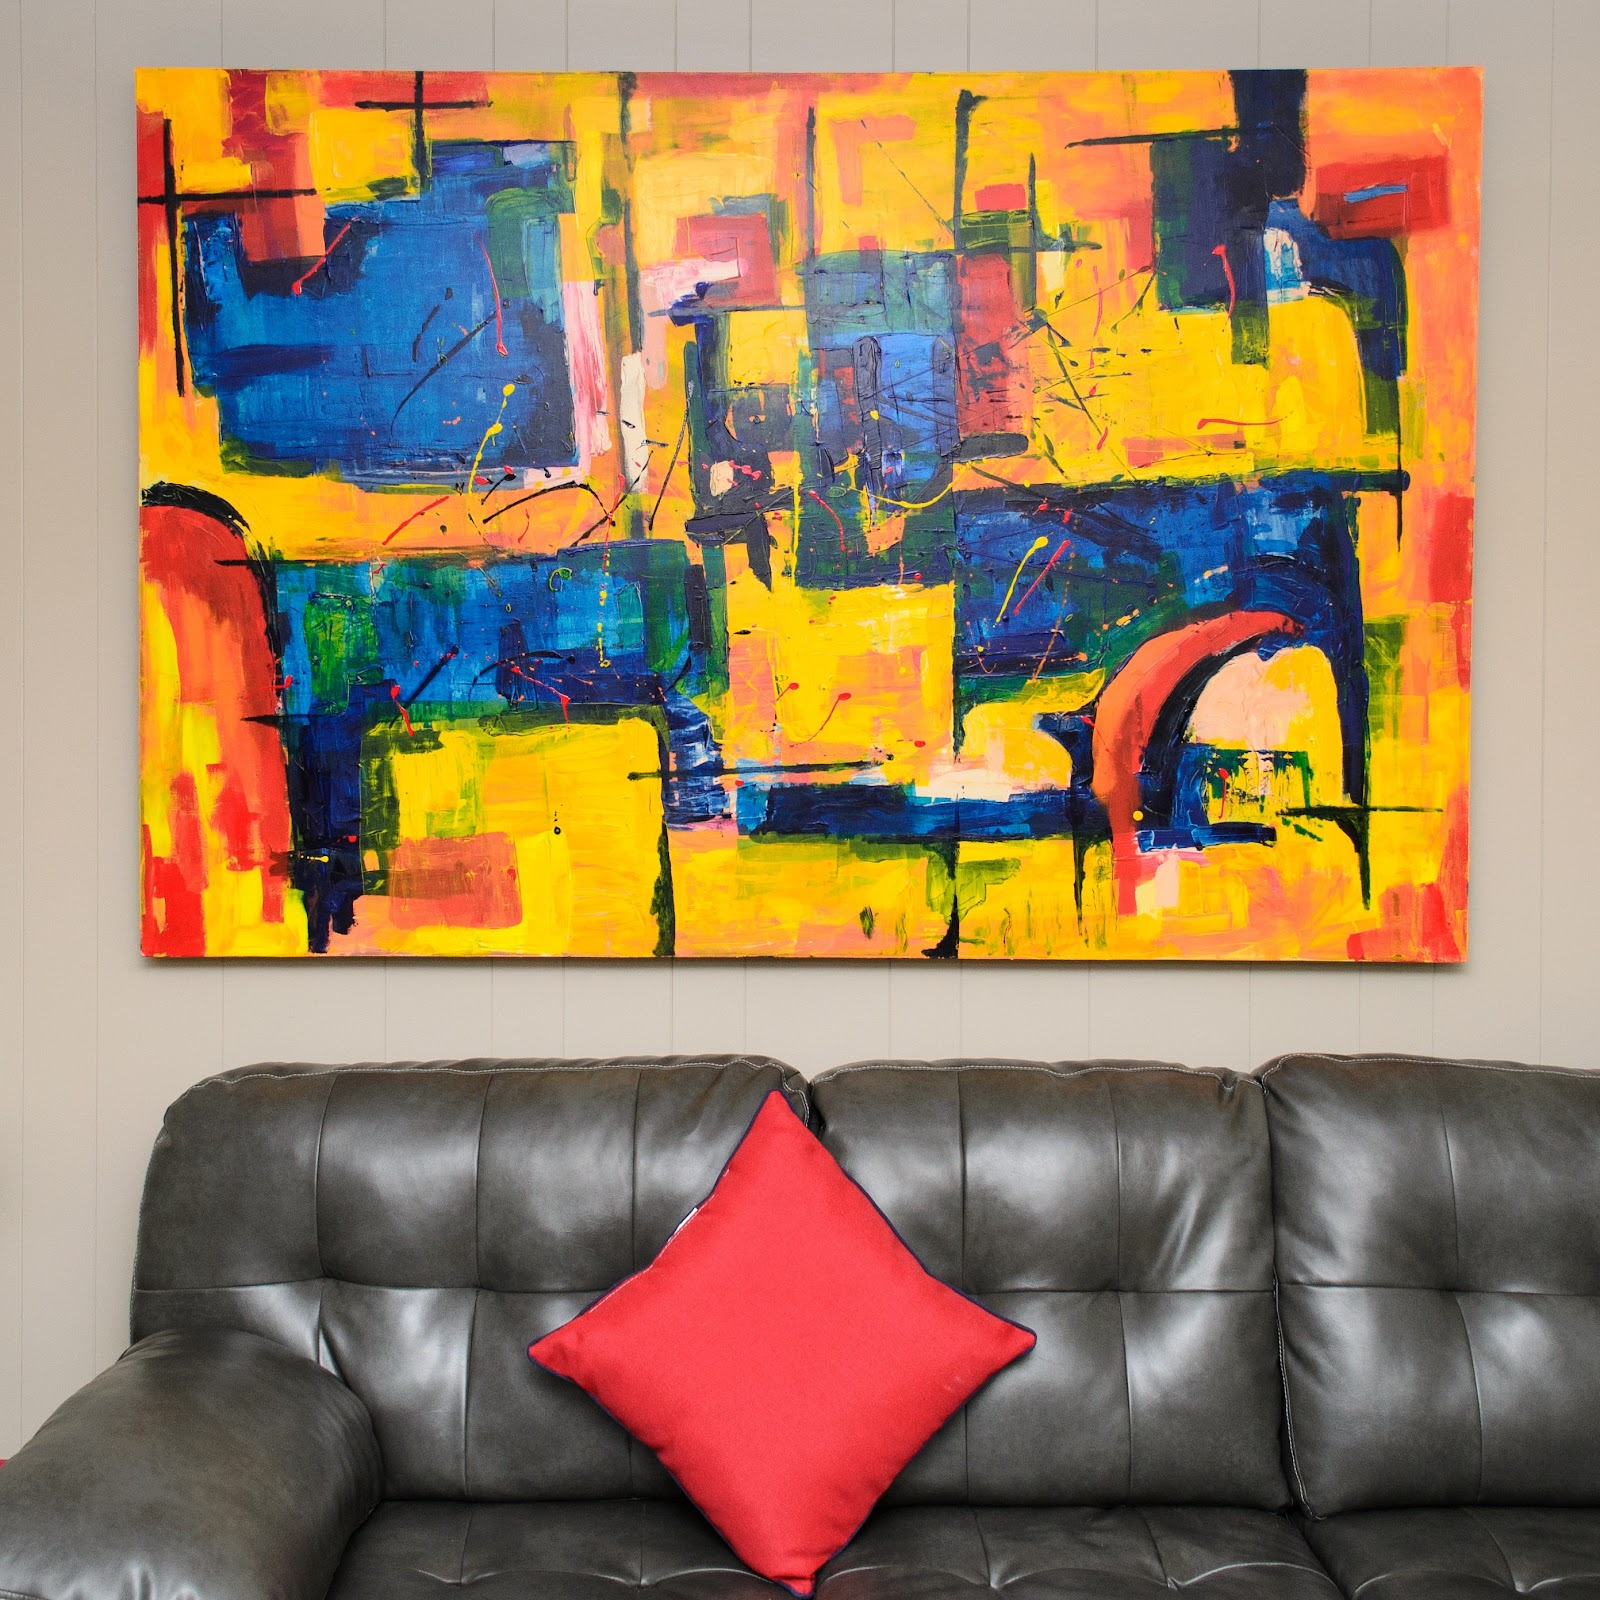 condo unit with a brown leather couch and a red pillow with a vibrant abstract painting hung on the wall of a condo unit space